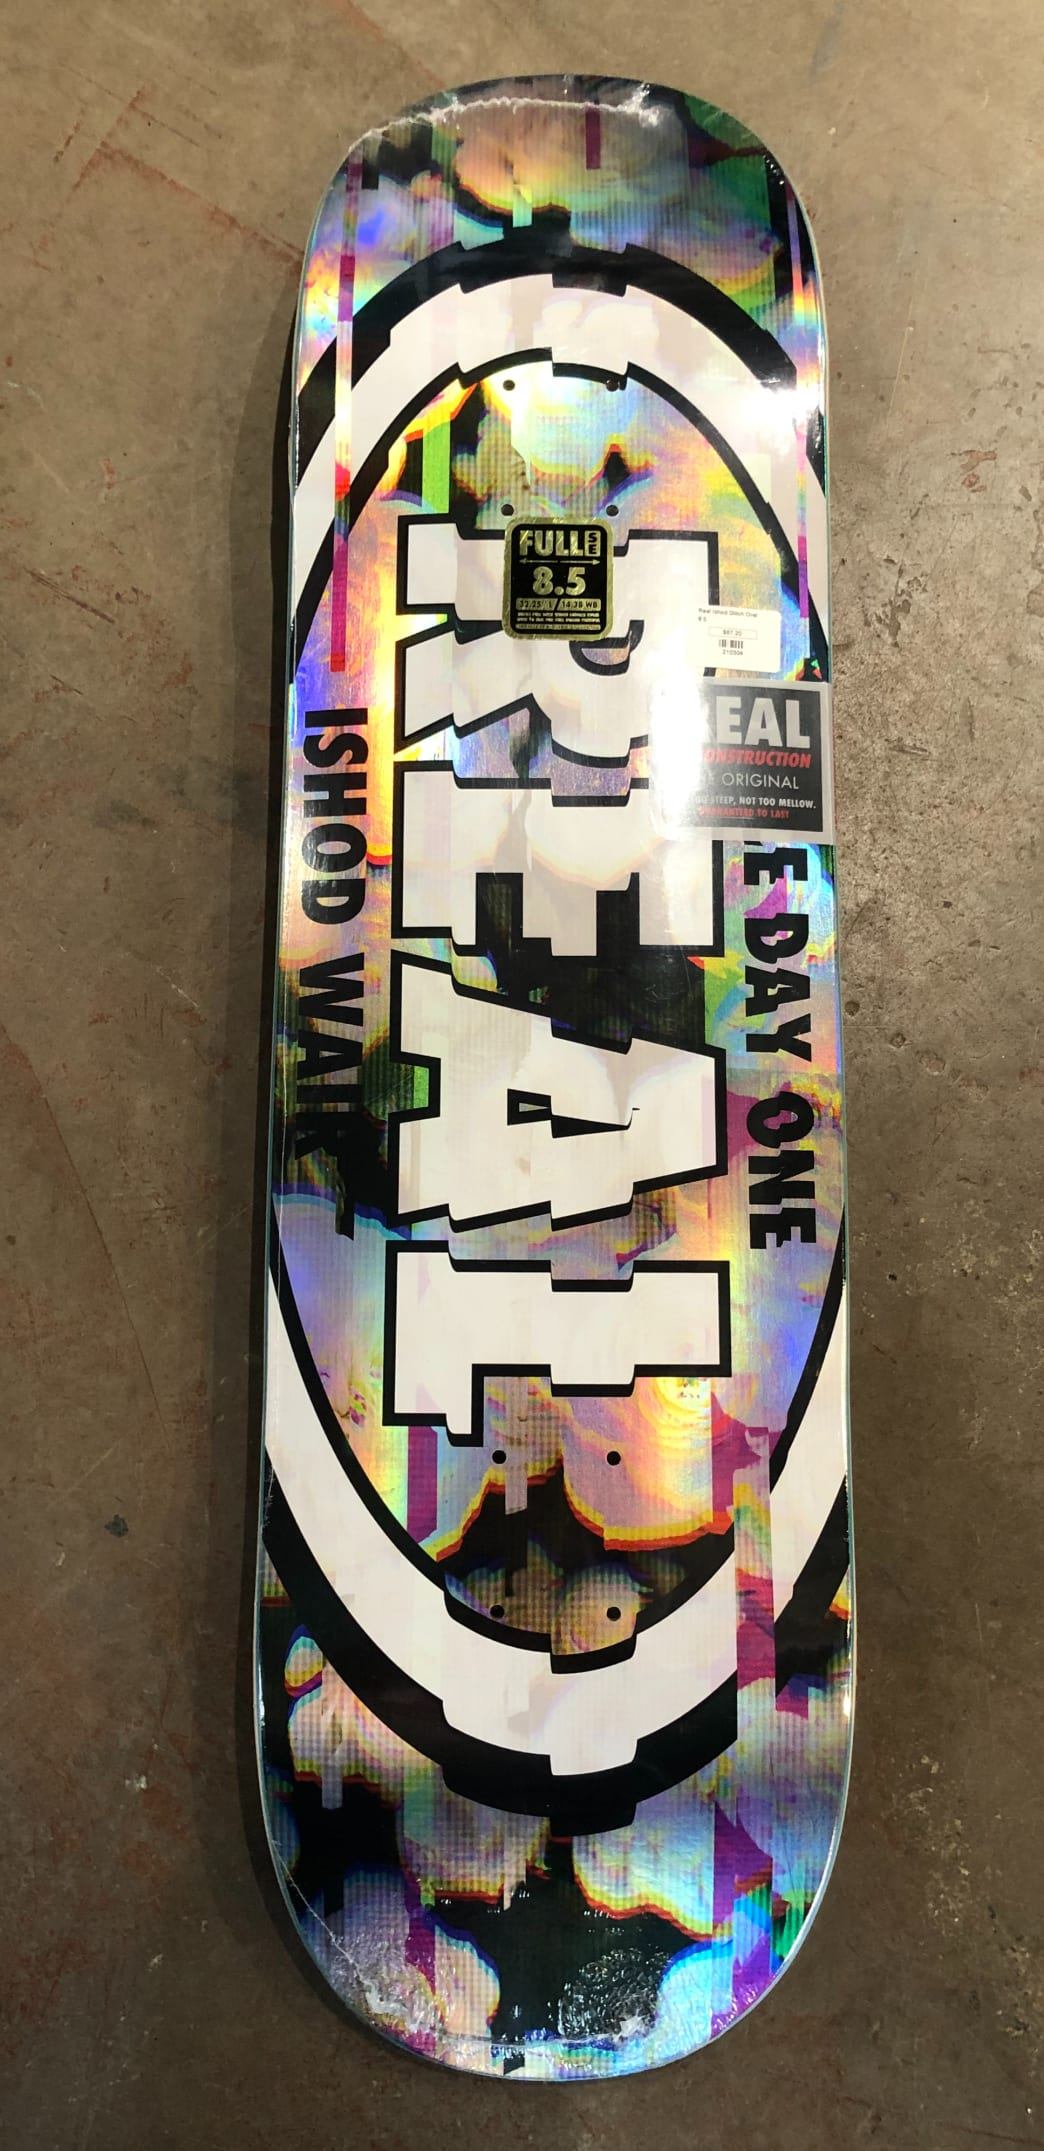 Real Ishod Wair Glitch Oval Deck | Deck by Real Skateboards 1